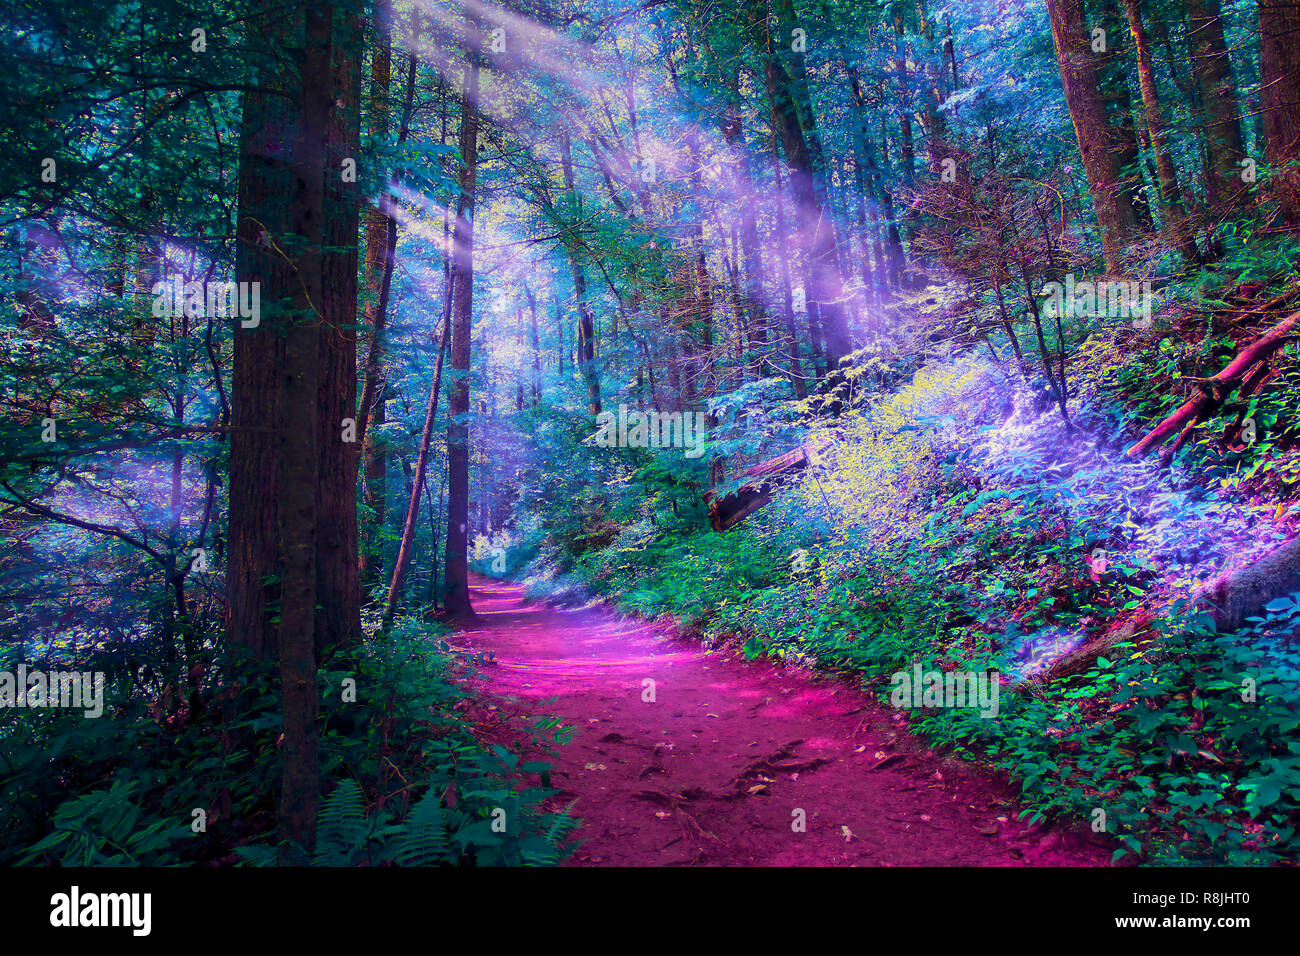 A path in the Pisgah National Forest is stylized to appear in vivid surreal colors to create a mystical quality. - Stock Image